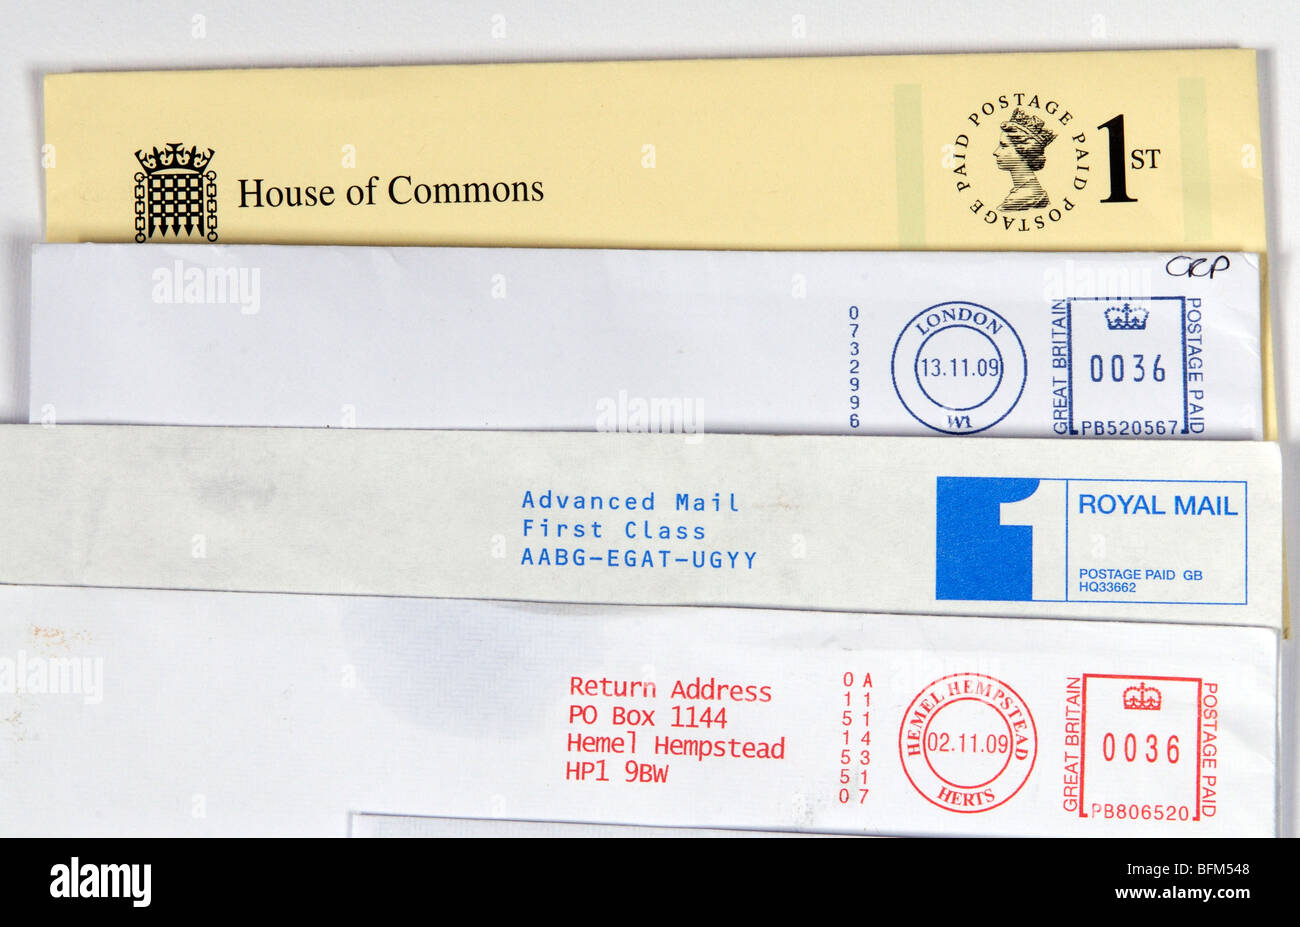 1st class postage paid Royal Mail labels - Stock Image